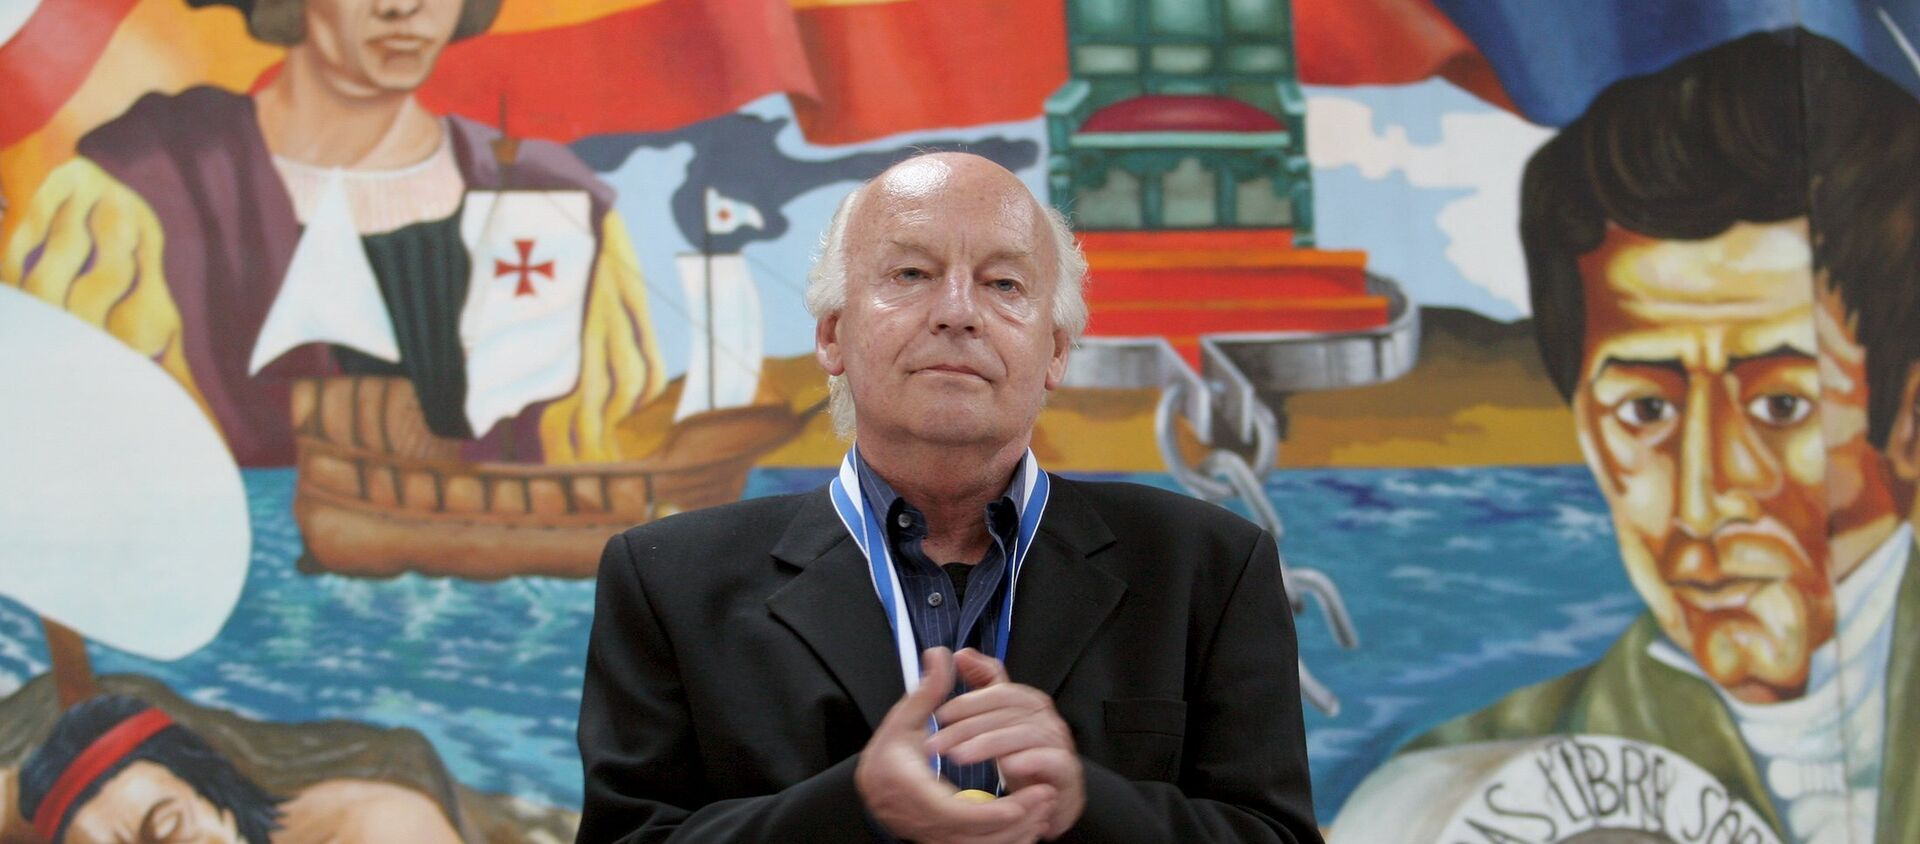 Uruguayan essayist, journalist and historian Eduardo Galeano acknowledges applause at the end of his speech at the National Pedagogical University in Tegucigalpa, in this October 3, 2005 file picture. - Sputnik Mundo, 1920, 03.09.2020